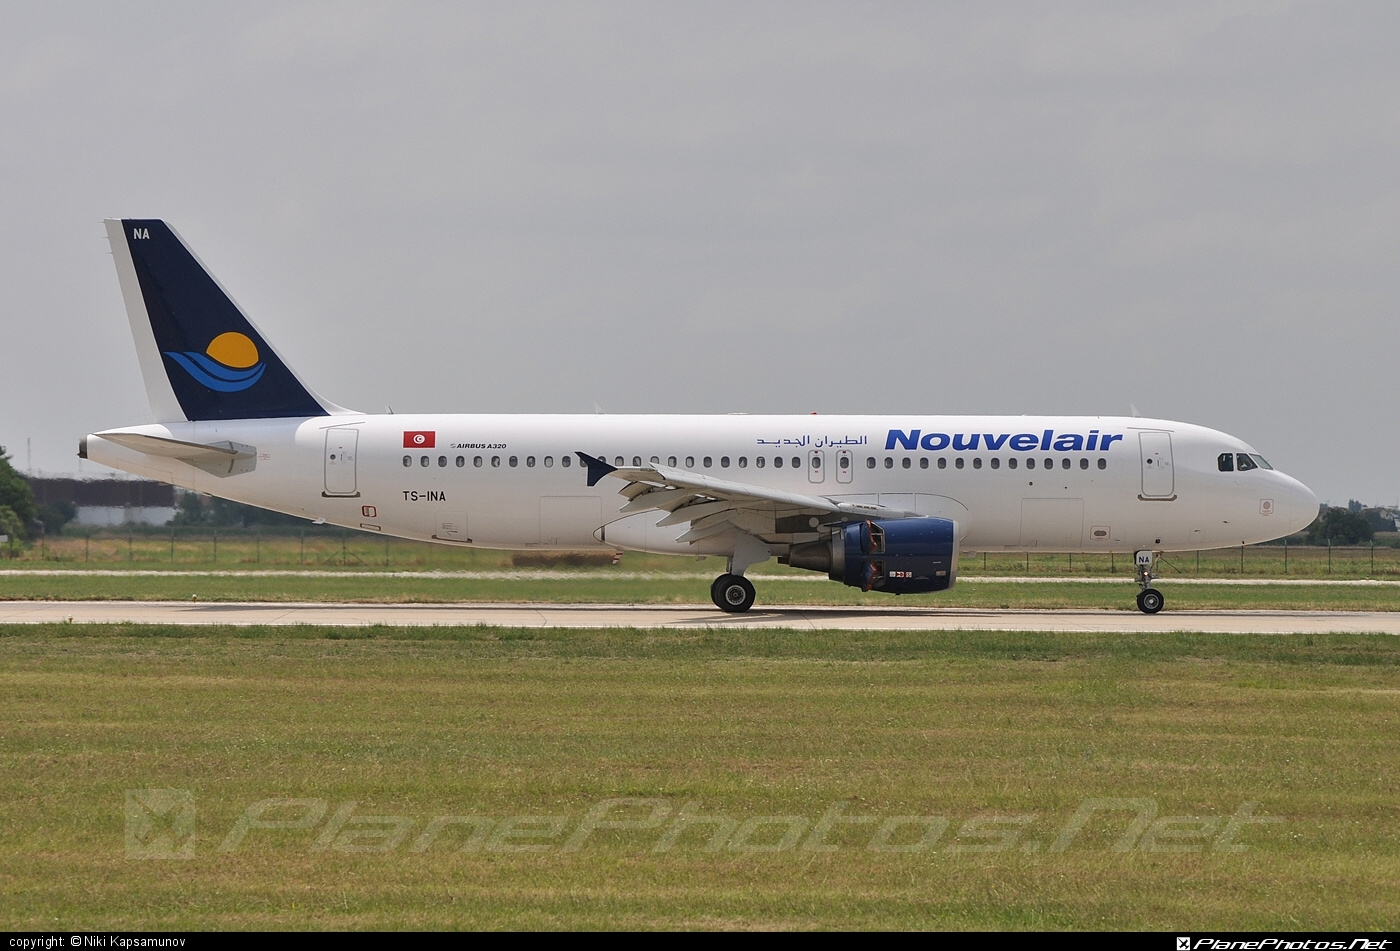 Airbus A320-214 - TS-INA operated by Nouvelair #a320 #a320family #airbus #airbus320